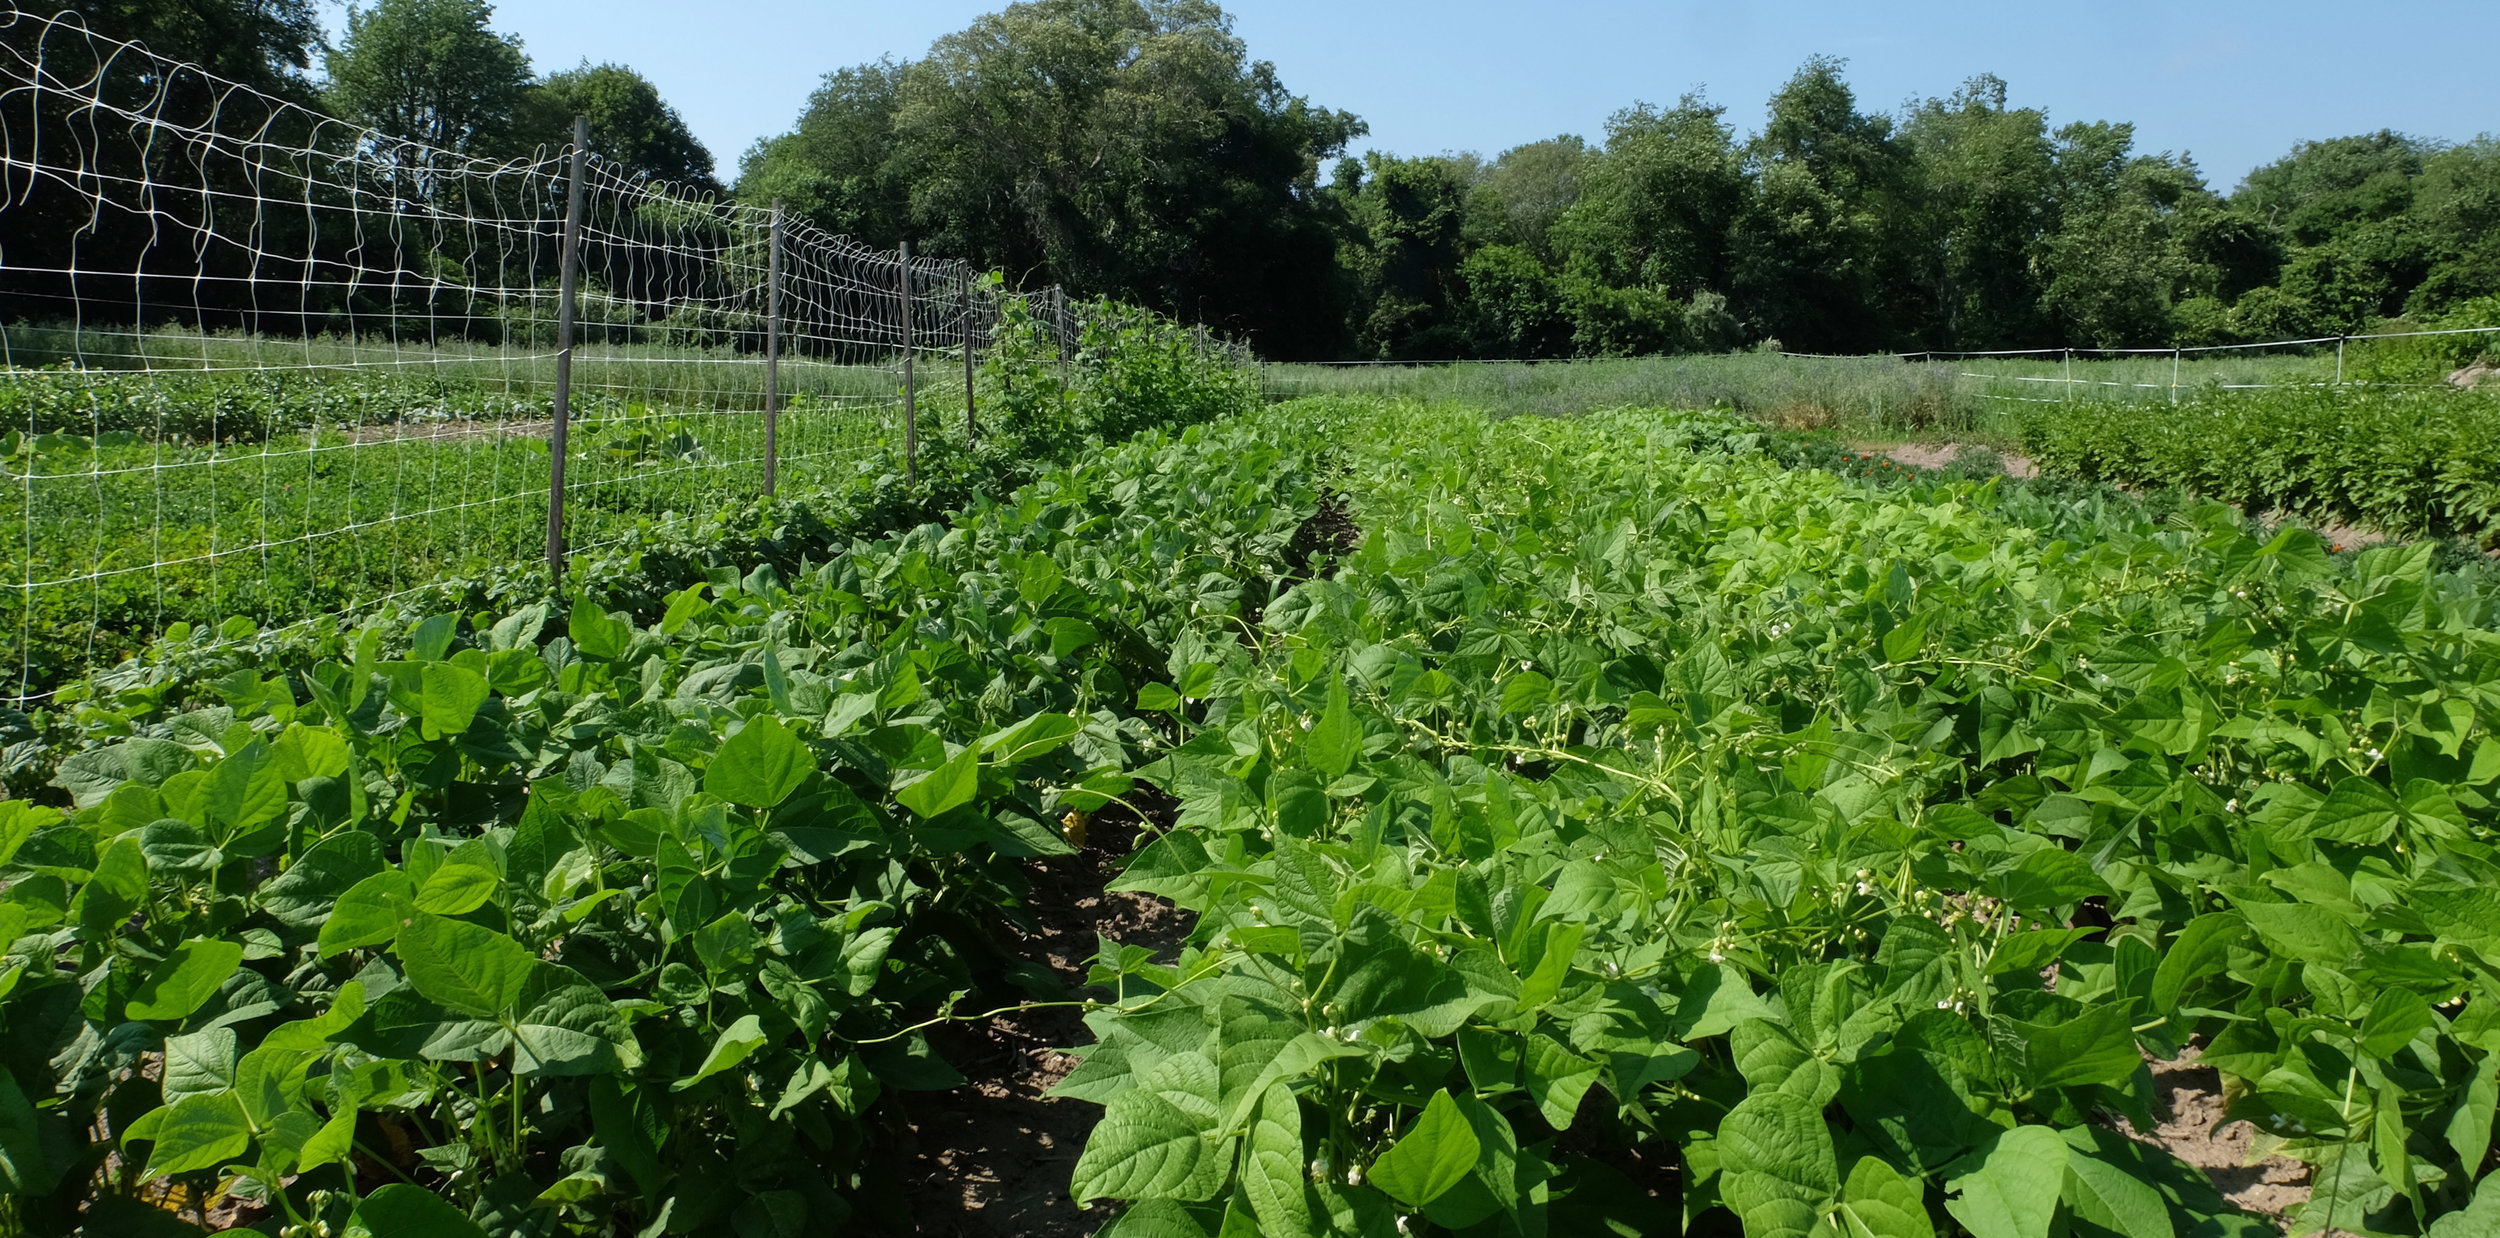 Dry beans and green beans in the field, July 2017.